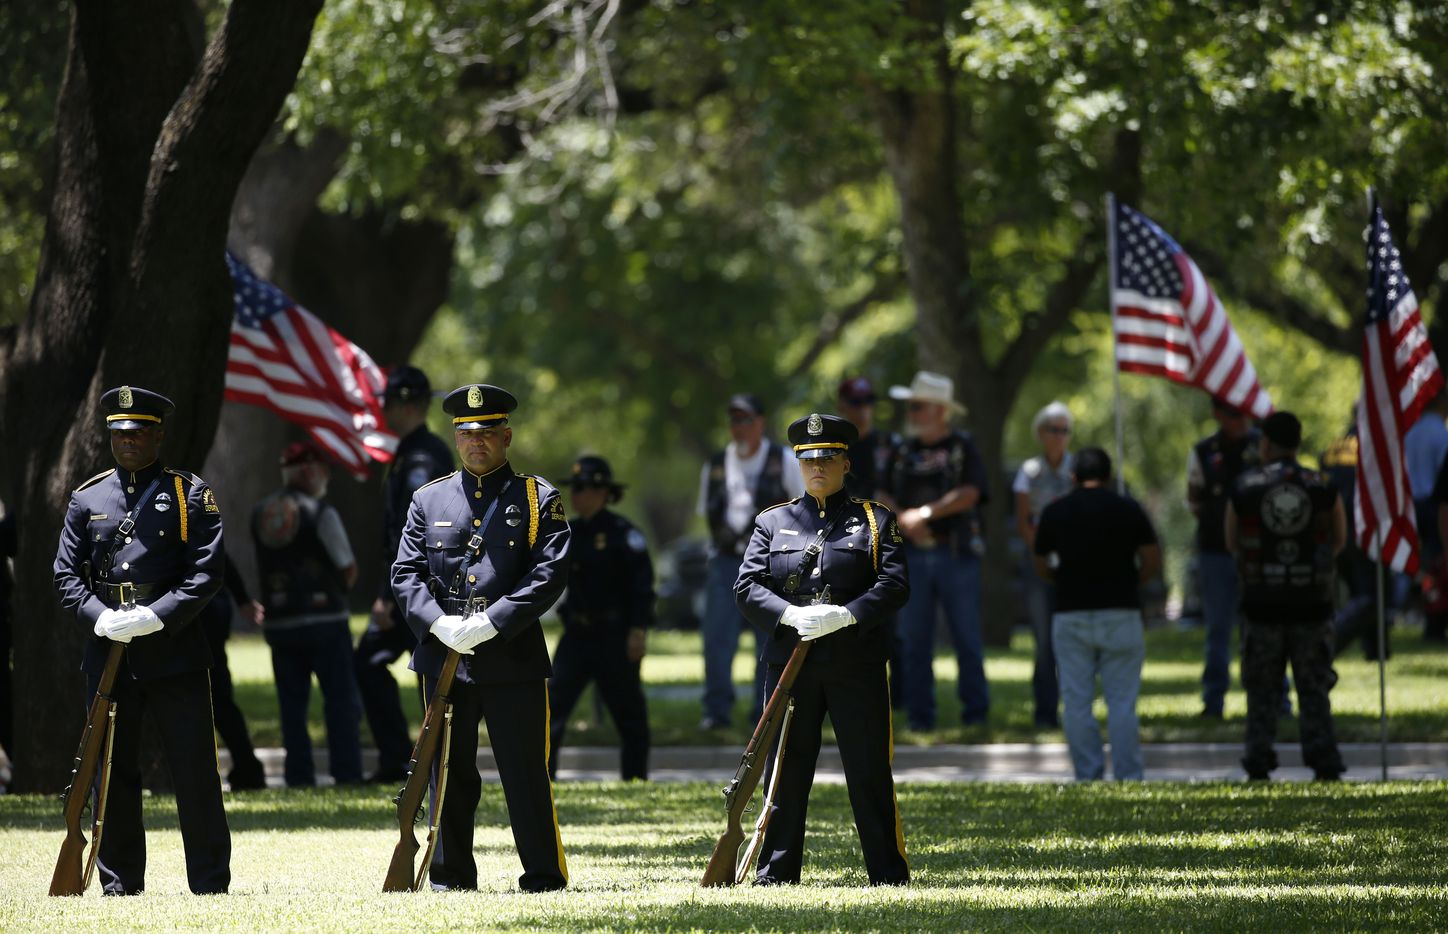 The Honor Guard stands at the burial for fallen Dallas police officer Lorne Ahrens in the Garden of Honor at Restland Funeral Home and Cemetery in Dallas on July 13, 2016. Ahrens and four other officers were gunned down during an ambush on police in downtown Dallas.